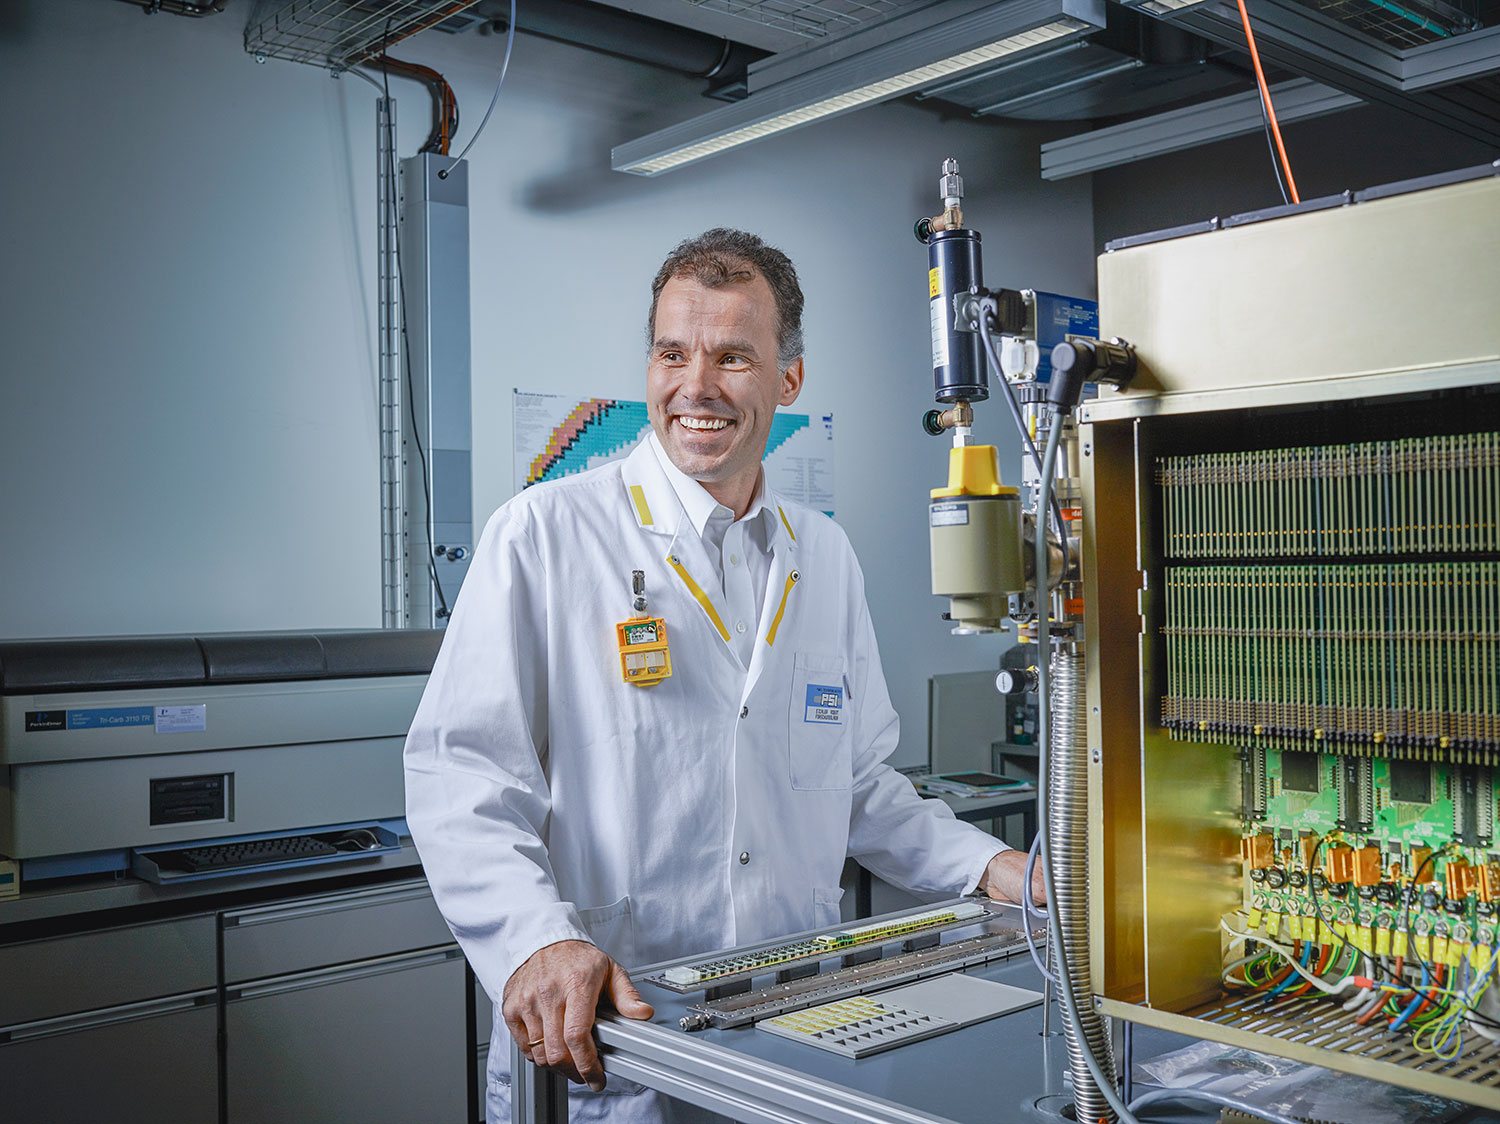 Robert Eichler leads the Heavy Elements Research Group at the Paul Scherrer Institute. He and his colleagues generate the short-lived atoms that are located at the far end of the periodic table of elements – and carry out chemical experiments with them in just fractions of seconds. (Photo: Scanderbeg Sauer Photography)